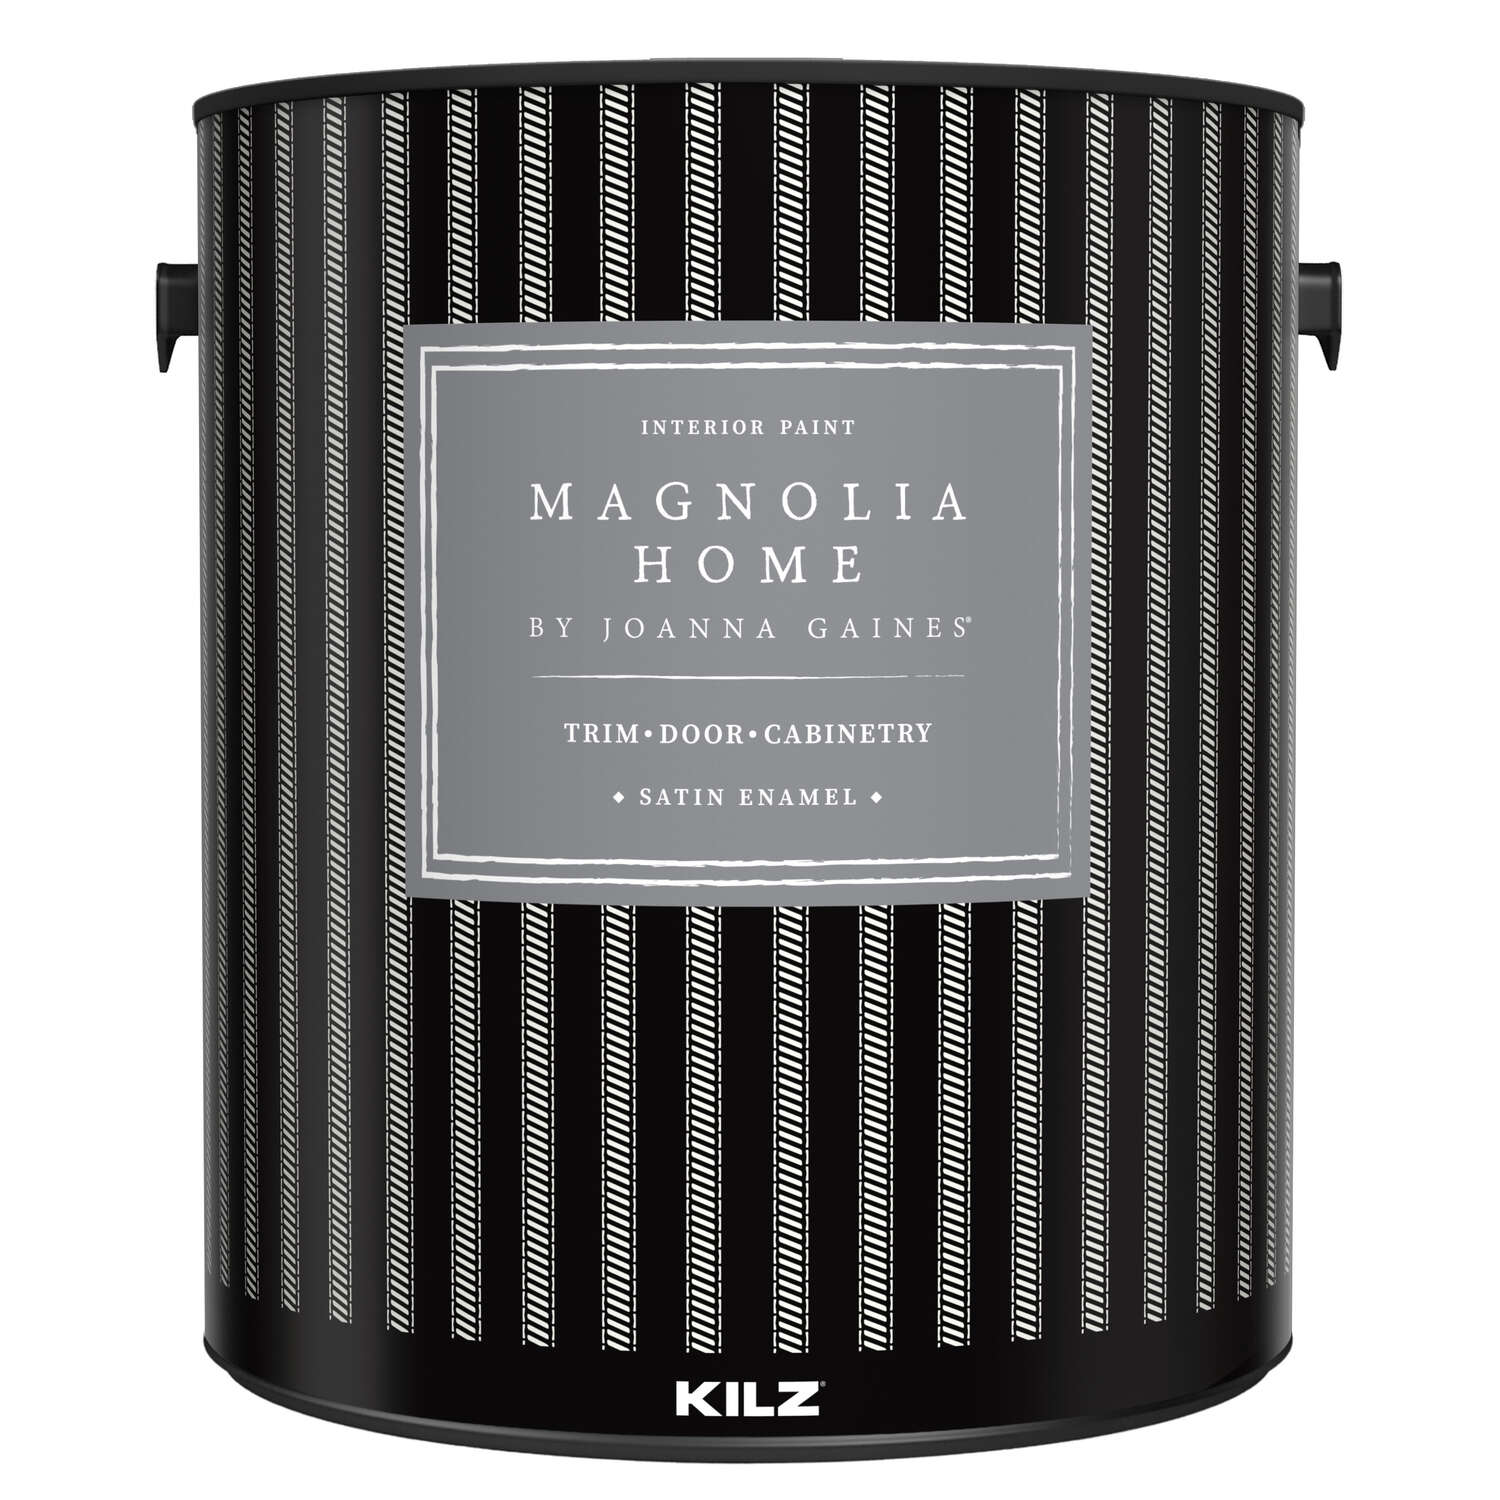 Magnolia Home by Joanna Gaines  Kilz  Satin Enamel  Base 1  Cabinet and Trim Paint  Interior  1 gal.